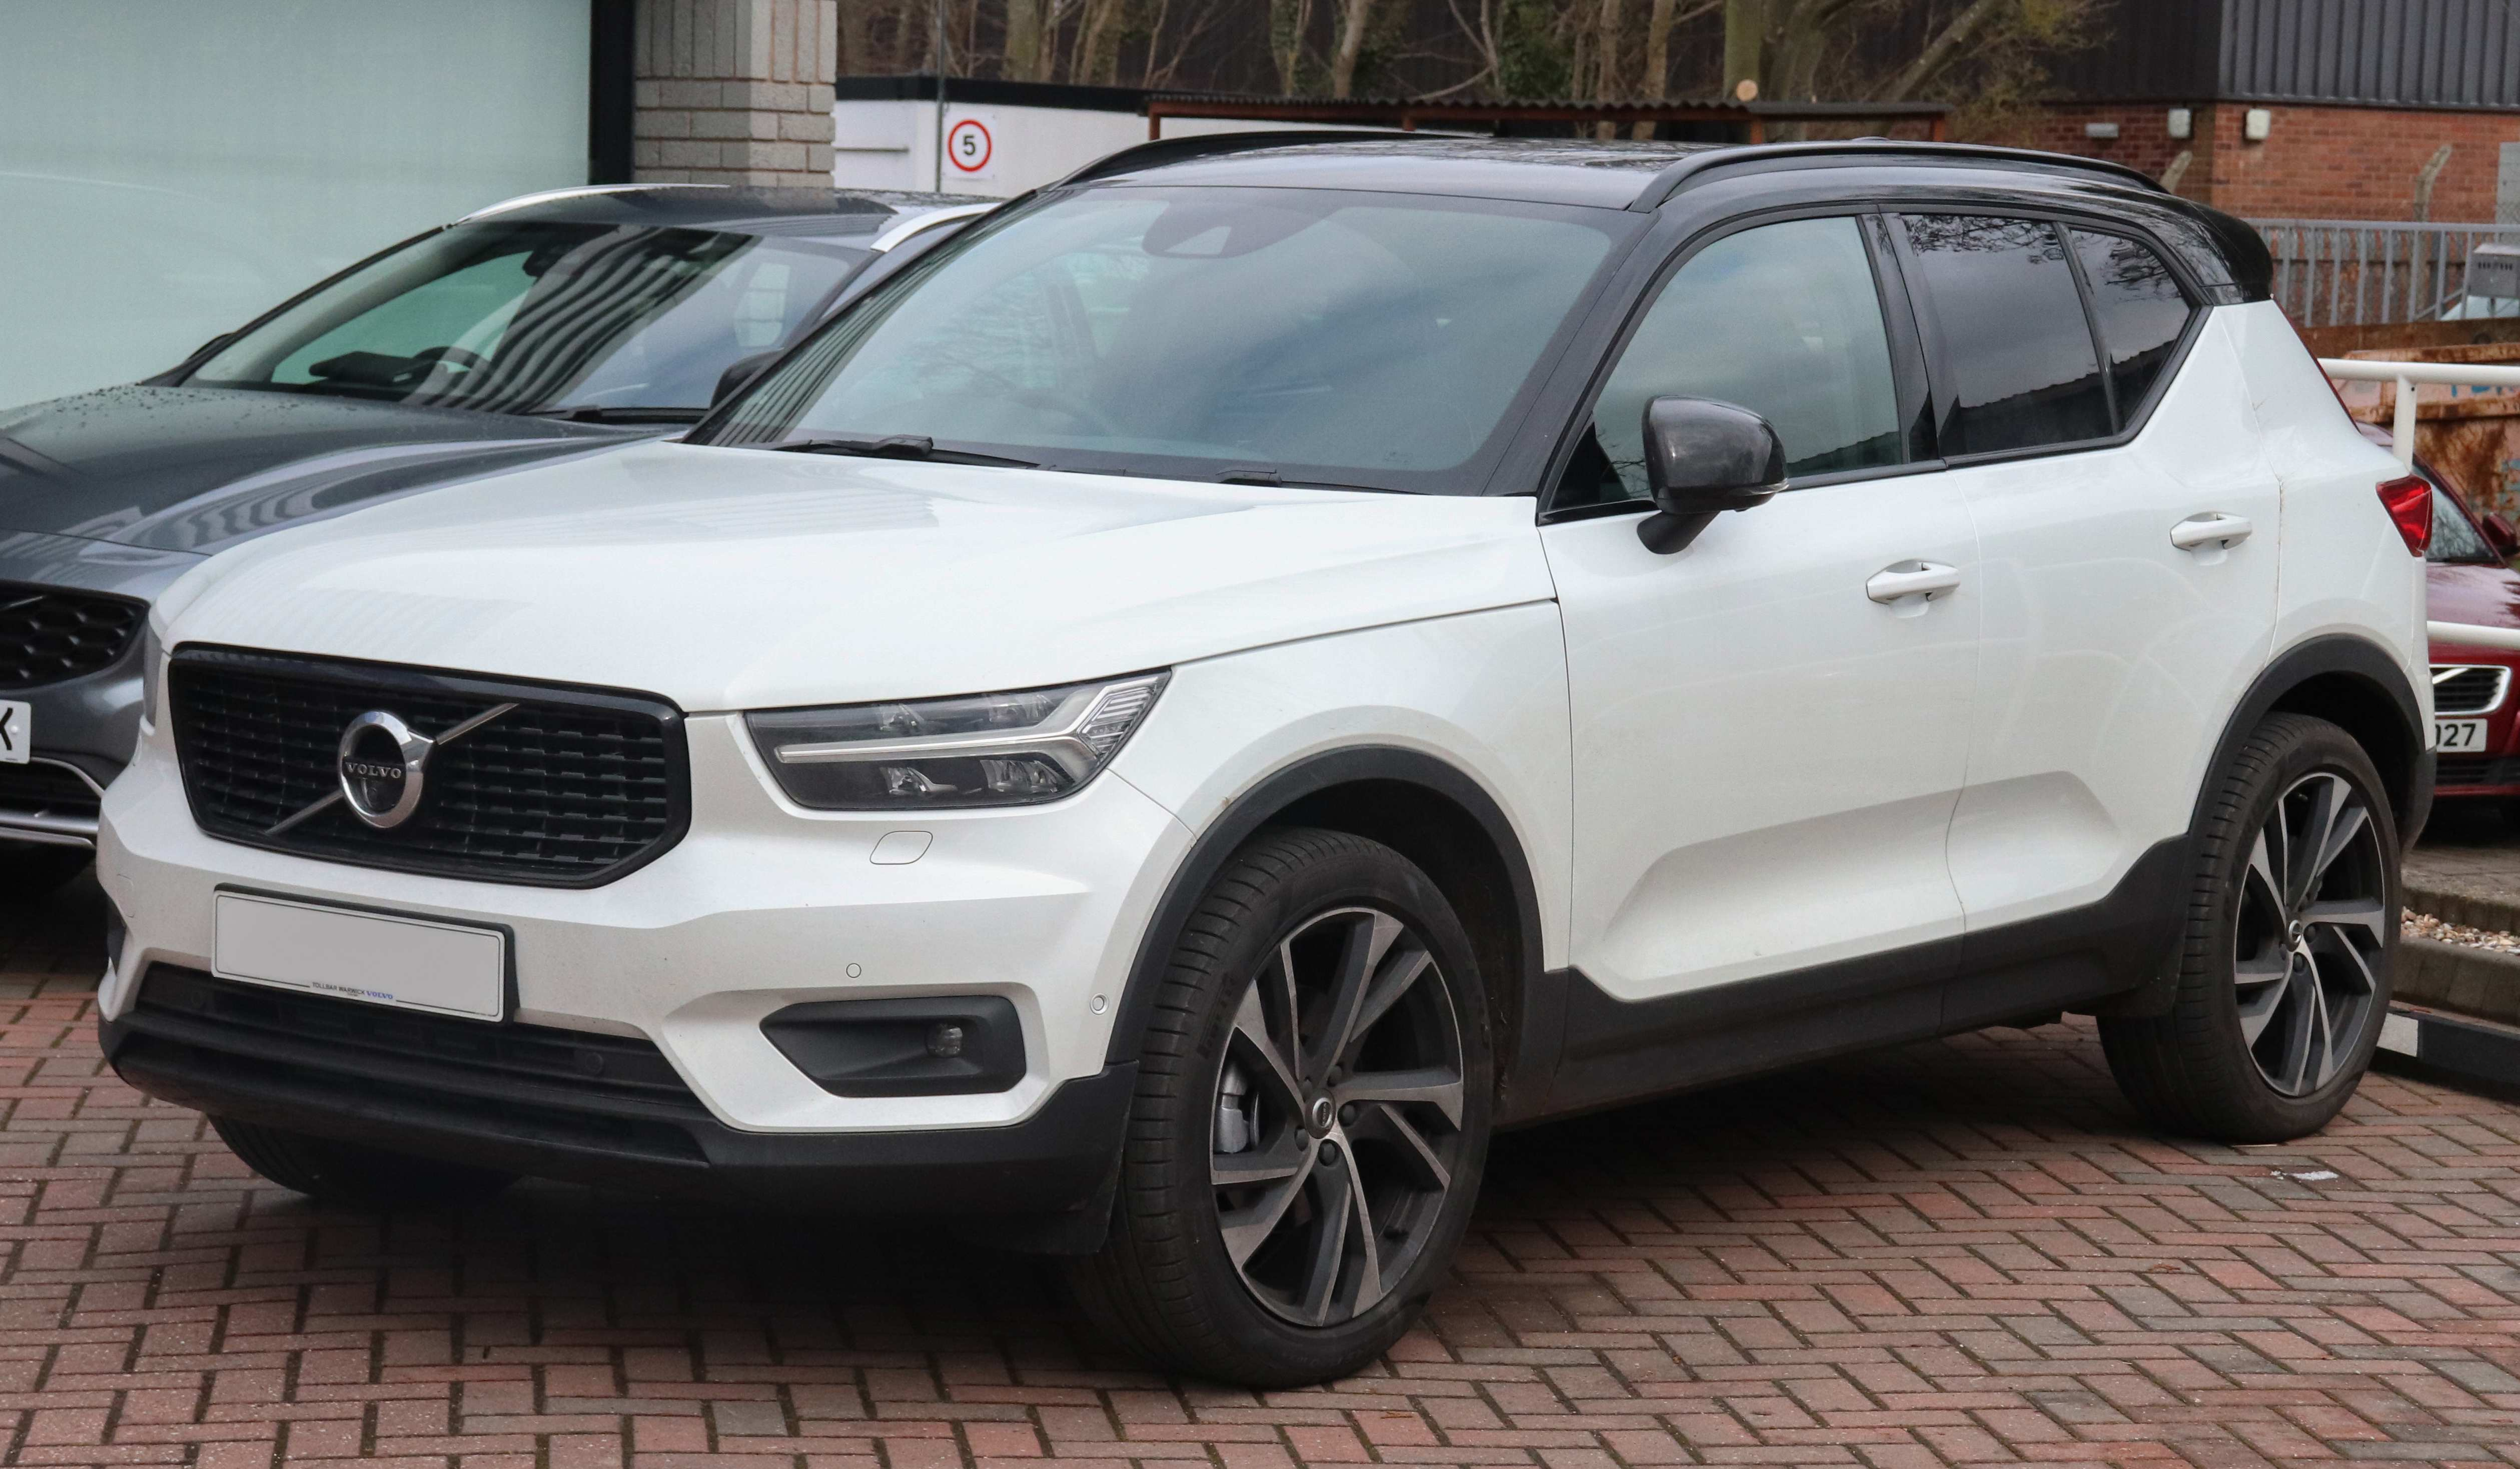 65 Concept of 2020 Volvo Xc40 Hybrid Ratings with 2020 Volvo Xc40 Hybrid